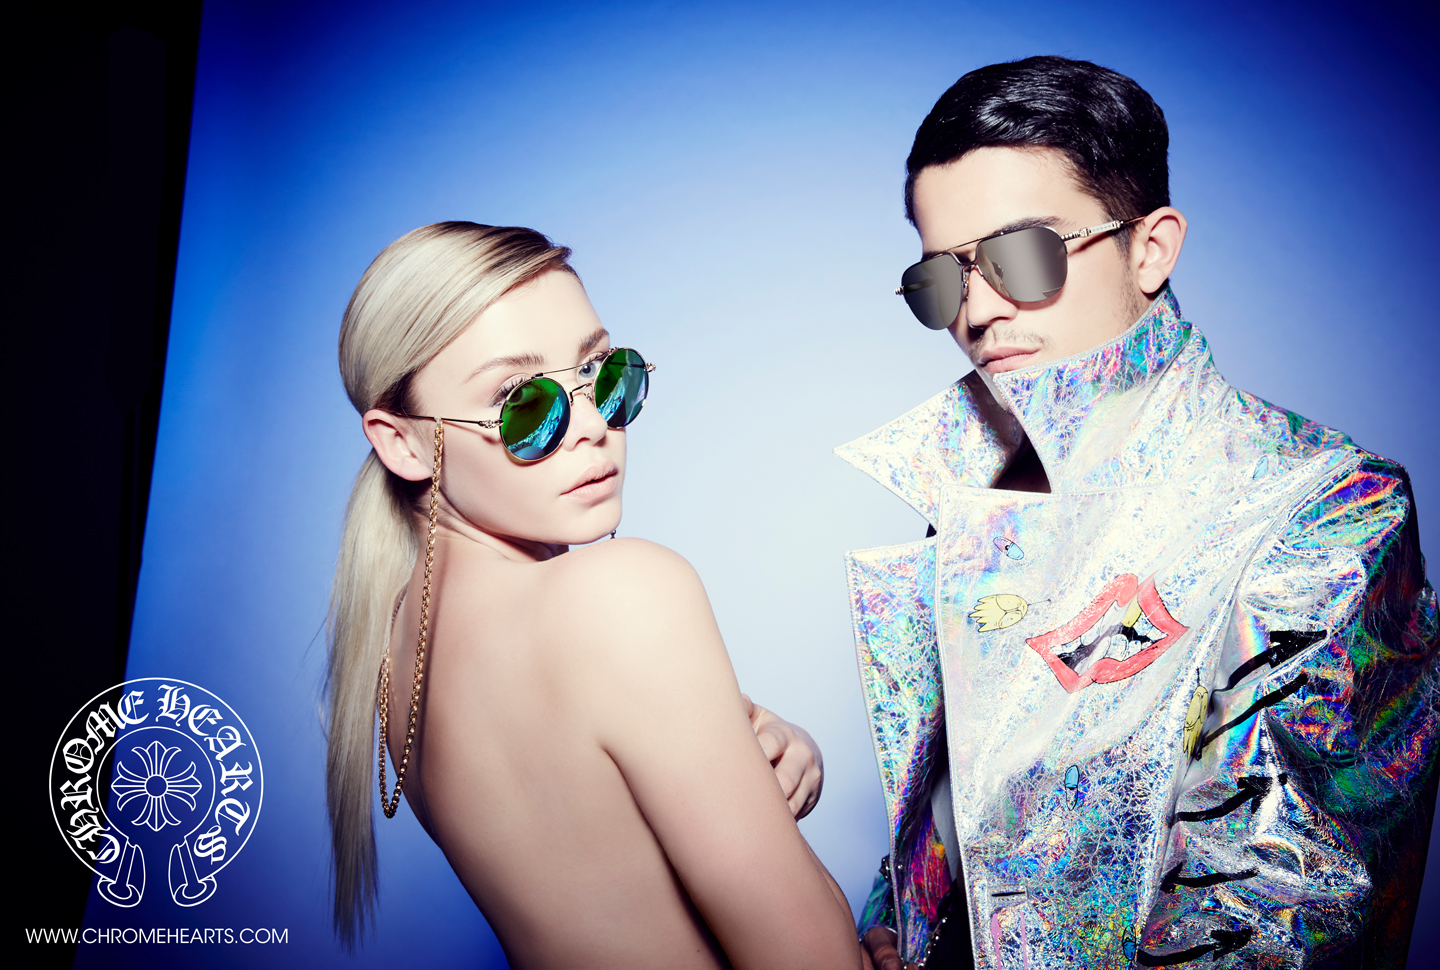 Lanna Lyon x Payden Hayes in CH glasses on blue backdrop | Matt DiGiacomo Chomper Jacket | CHROME HEARTS Photography by Laurie Lynn Stark